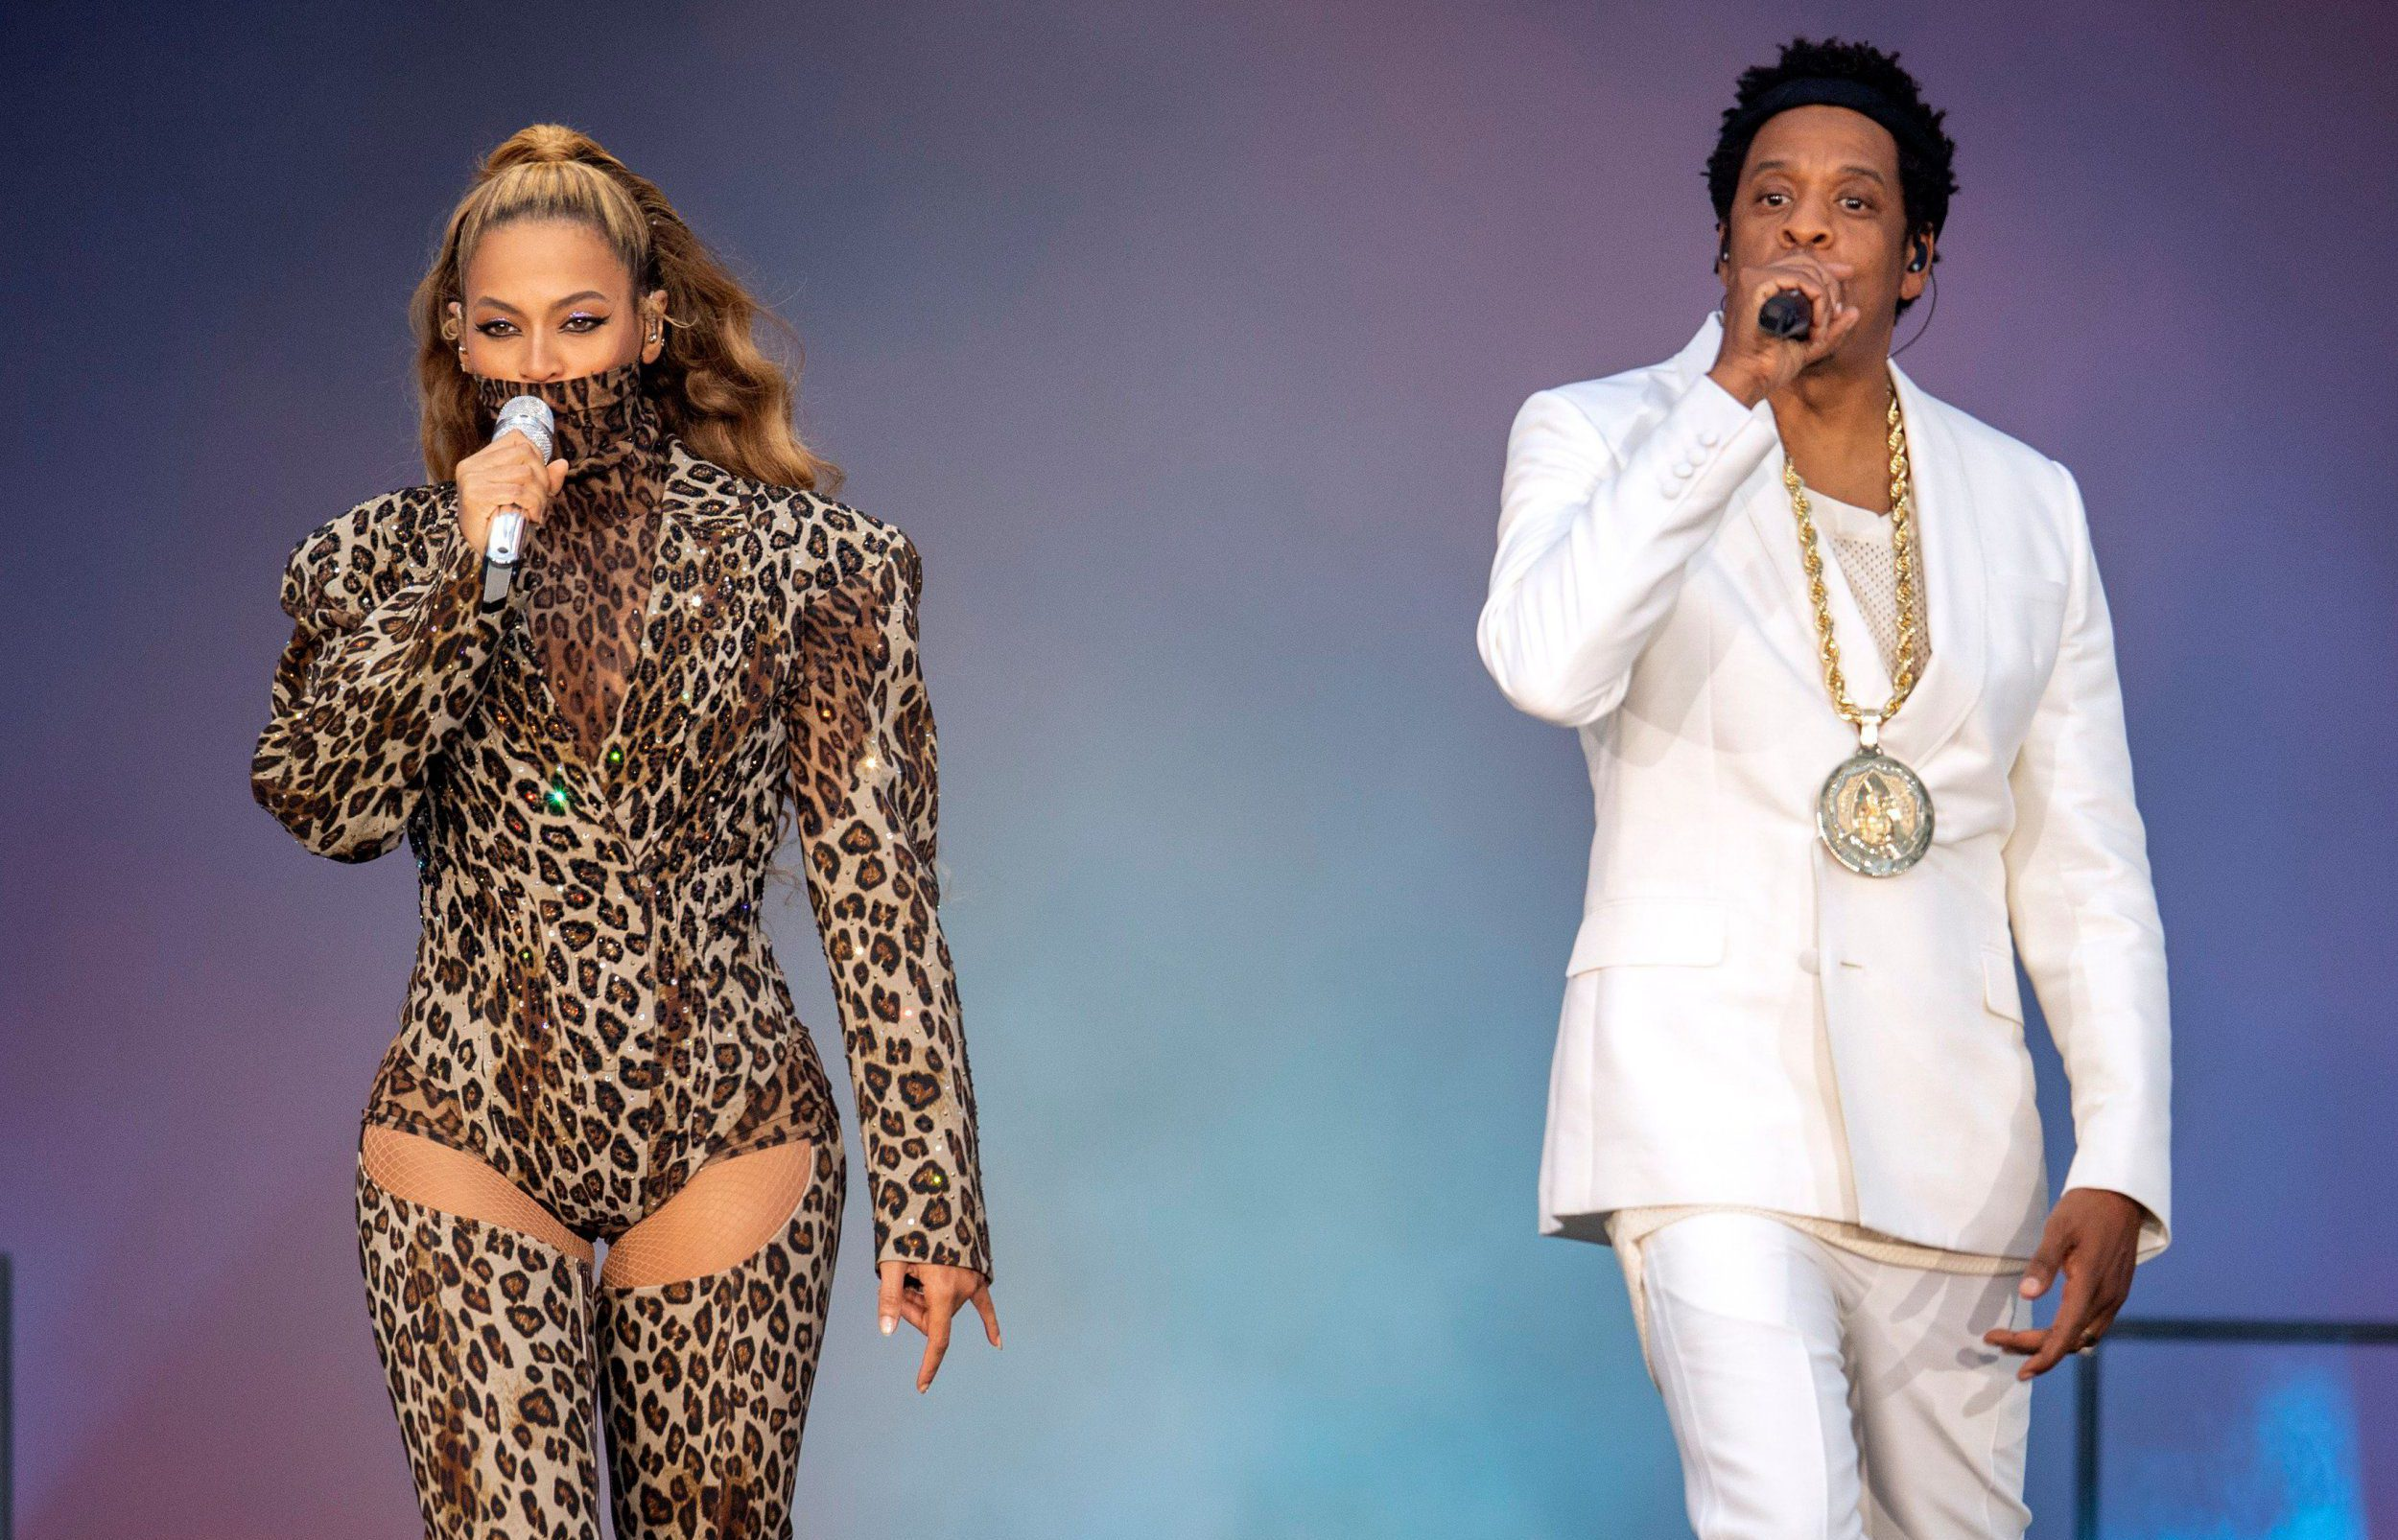 Mandatory Credit: Photo by James Gourley/PictureGroup/REX/Shutterstock (9716444c) Beyonce and Jay-Z in concert, 'On The Run II Tour', The London Stadium, UK - 16 Jun 2018